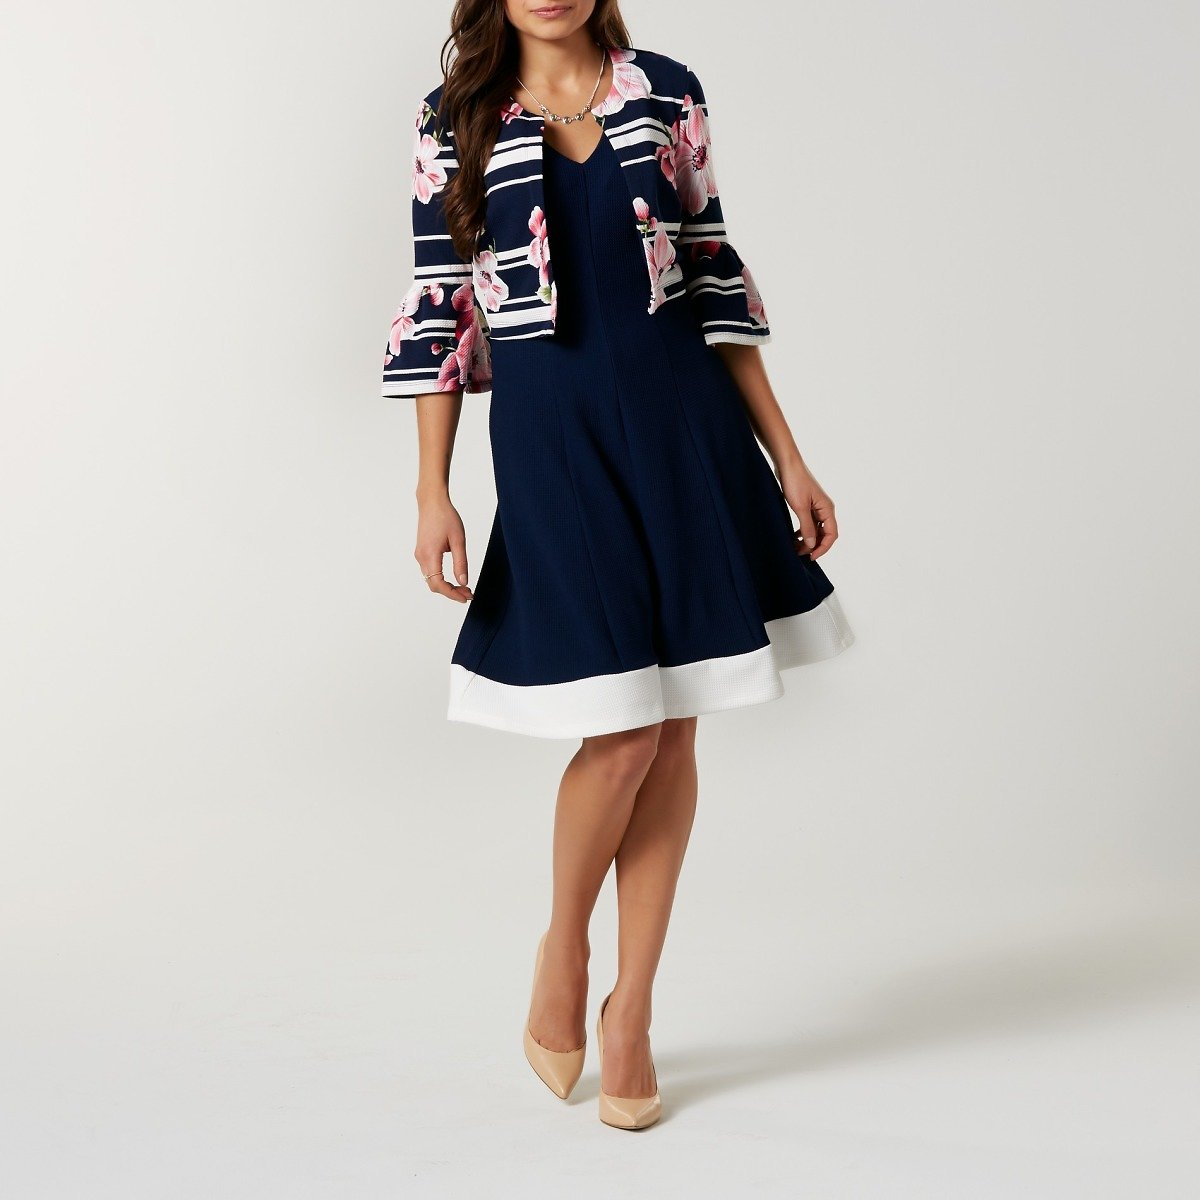 Robbie Bee Women's A-Line Dress & Cropped Cardigan - Floral